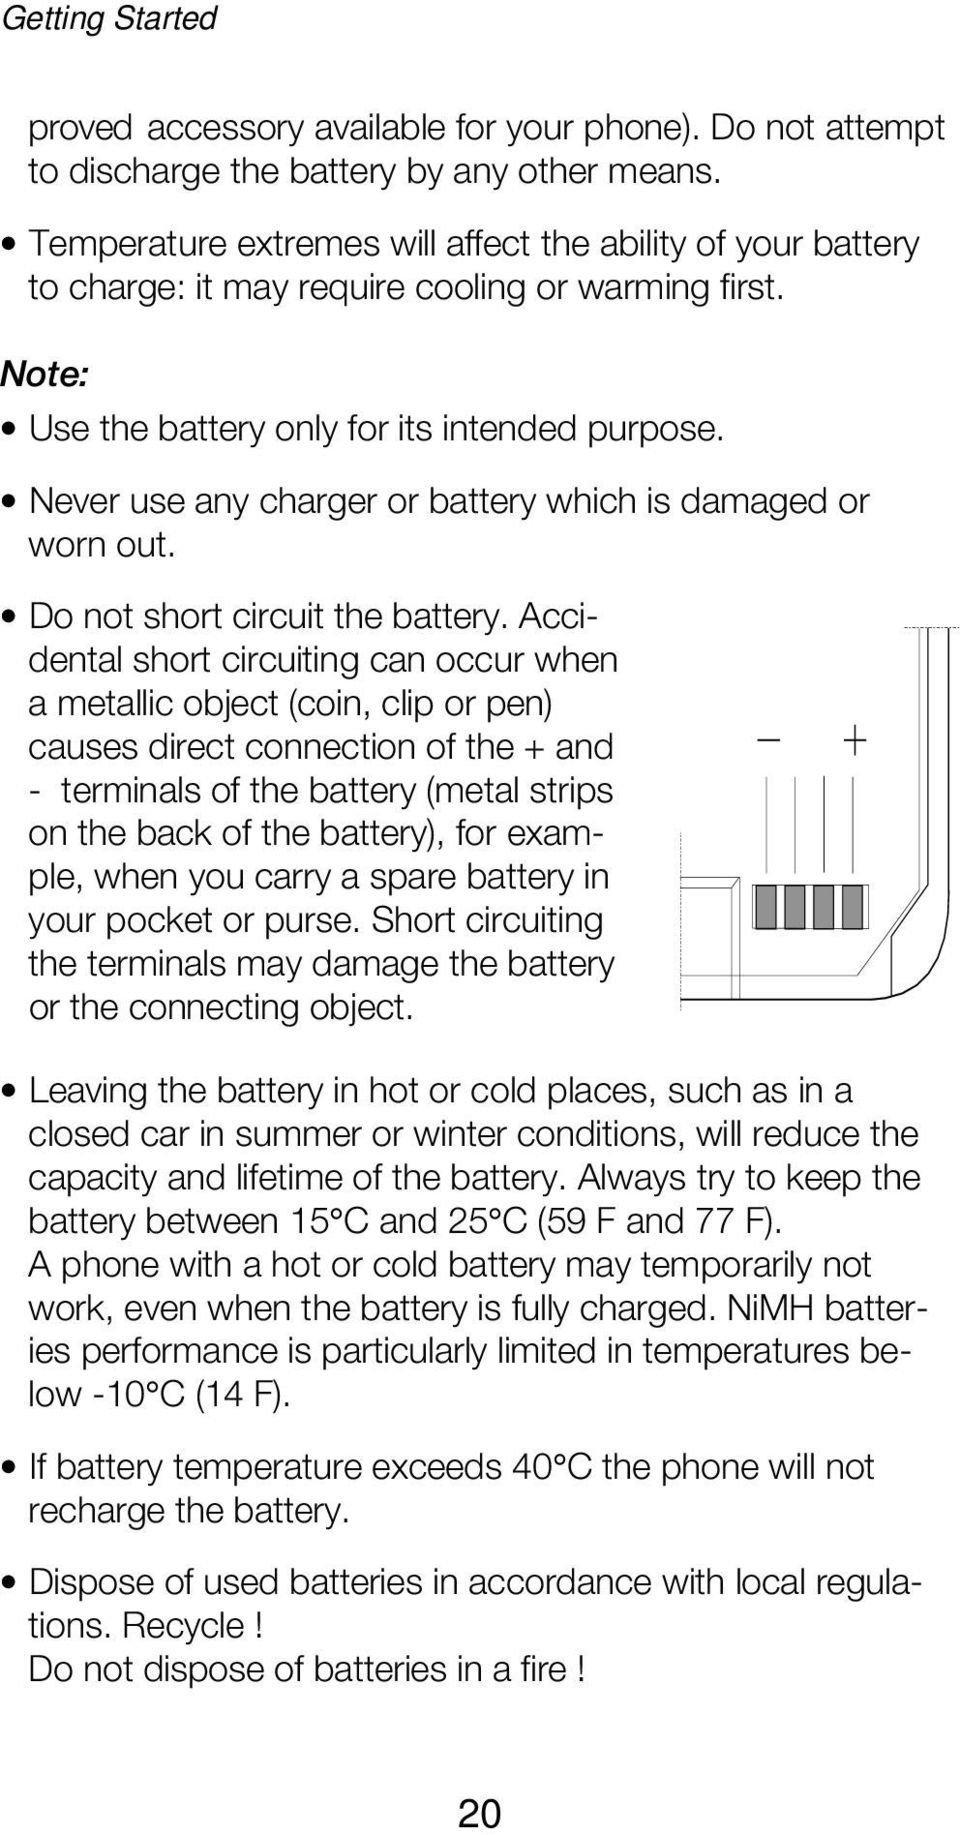 Never use any charger or battery which is damaged or worn out. Do not short circuit the battery.